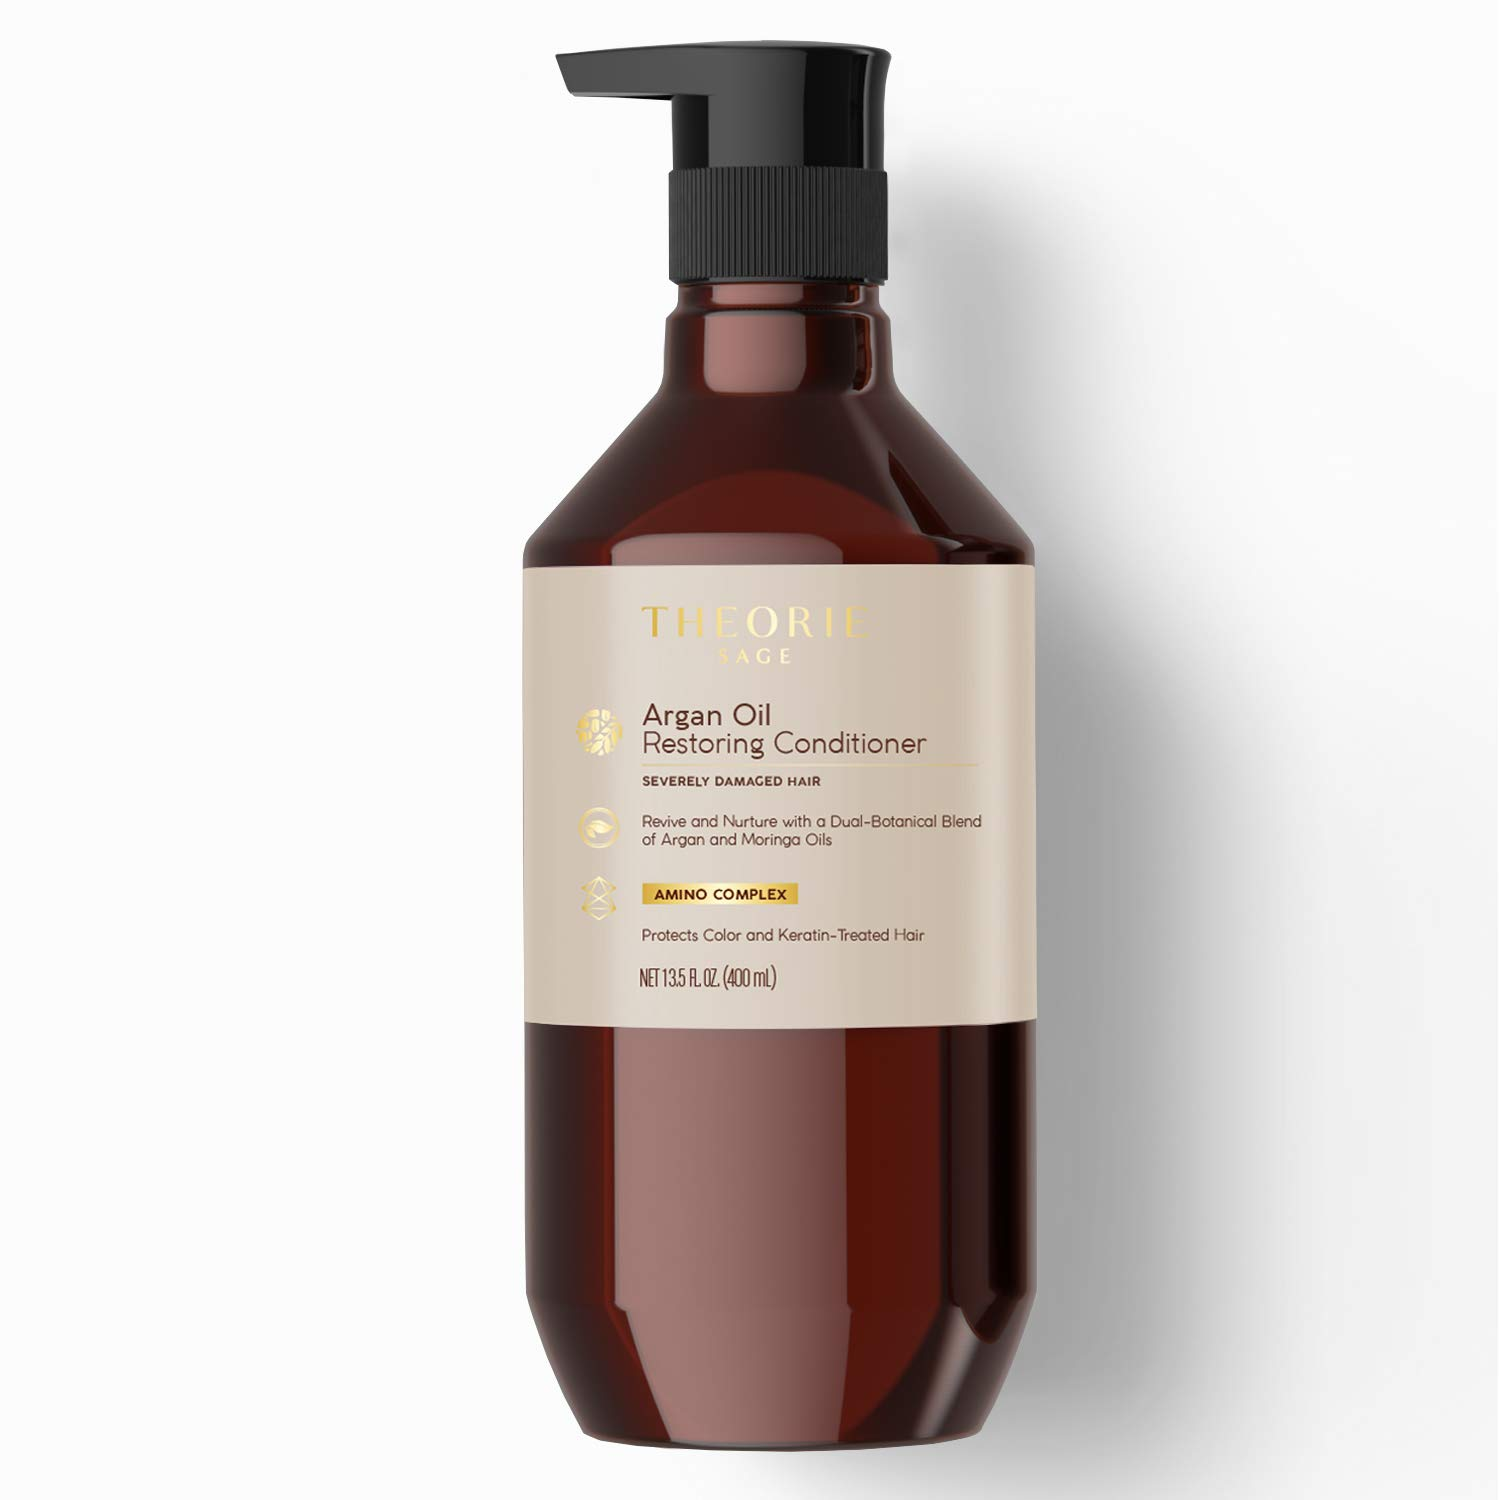 Theorie: Argan Oil - Ultimate Reform Conditioner | For all hair types | Color safe formula | Natural Ingredients (13.5 Fl Oz) - Label May Vary